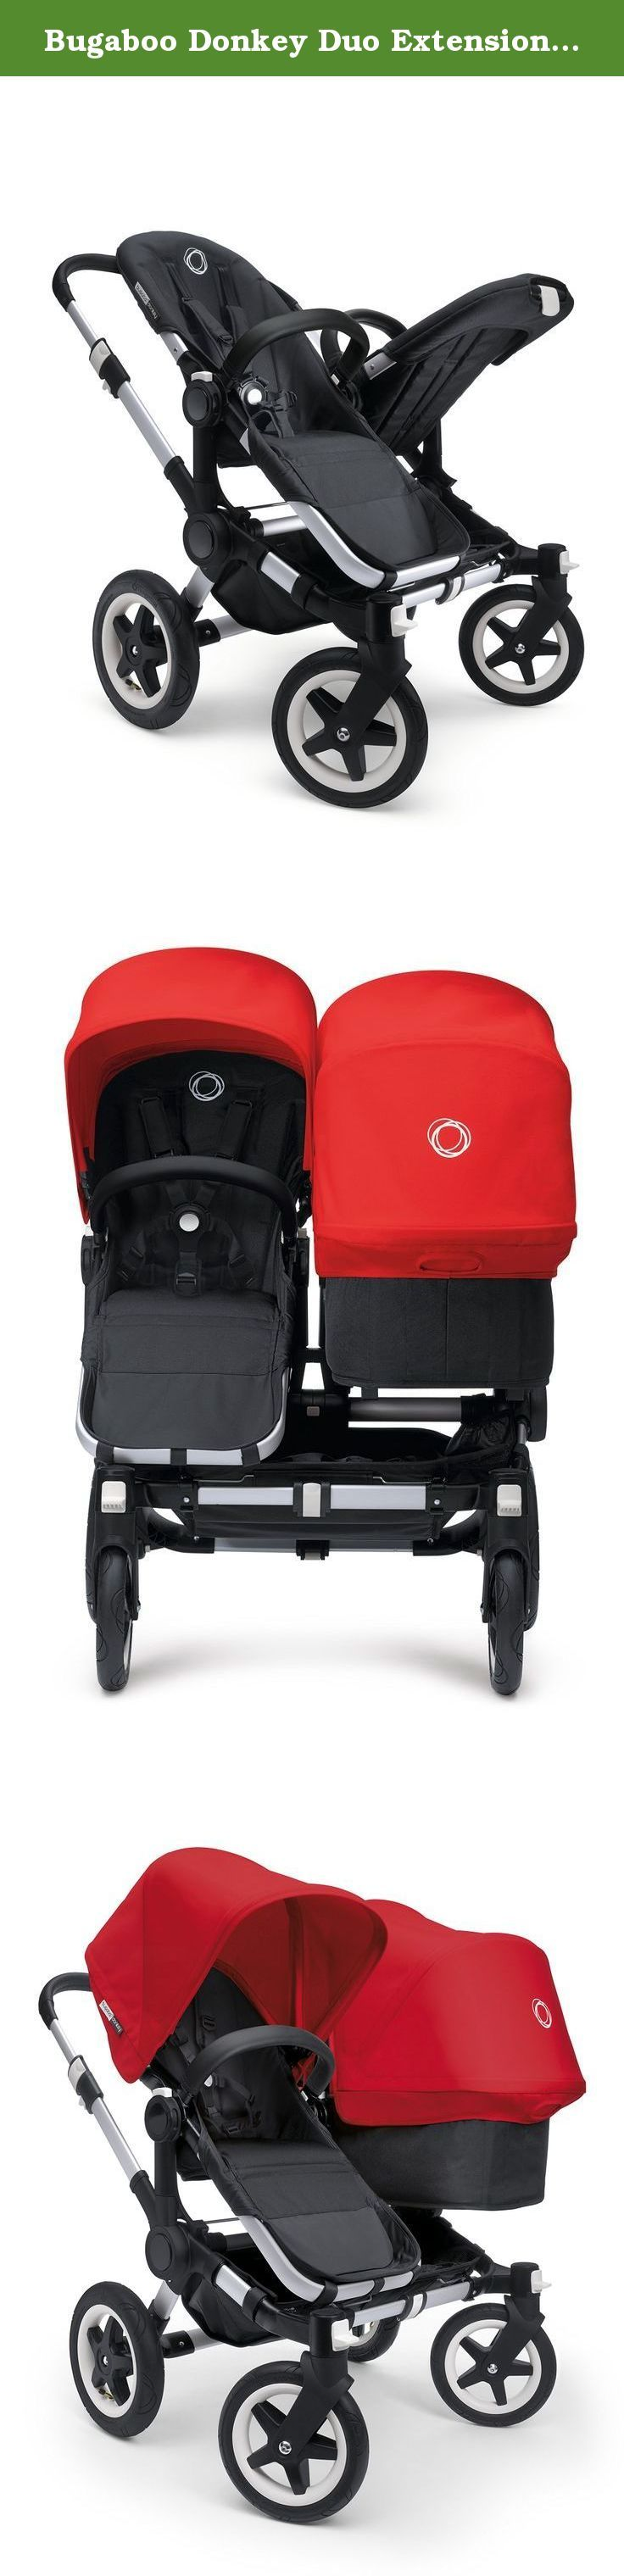 Bugaboo Donkey Duo Extension Set, Aluminum. The Duo Extension set converts the mono Bugaboo Donkey to a double stroller to grow with your family, the bugaboo donkey transforms - in just three simple clicks - from a mono to a duo stroller. And back again. This means you can use it for one kid, two kids of different ages, or twins. To complete the duo extension set, please add a bugaboo donkey sun canopy in the color of your choice. This extension set is compatible with the bugaboo donkey…